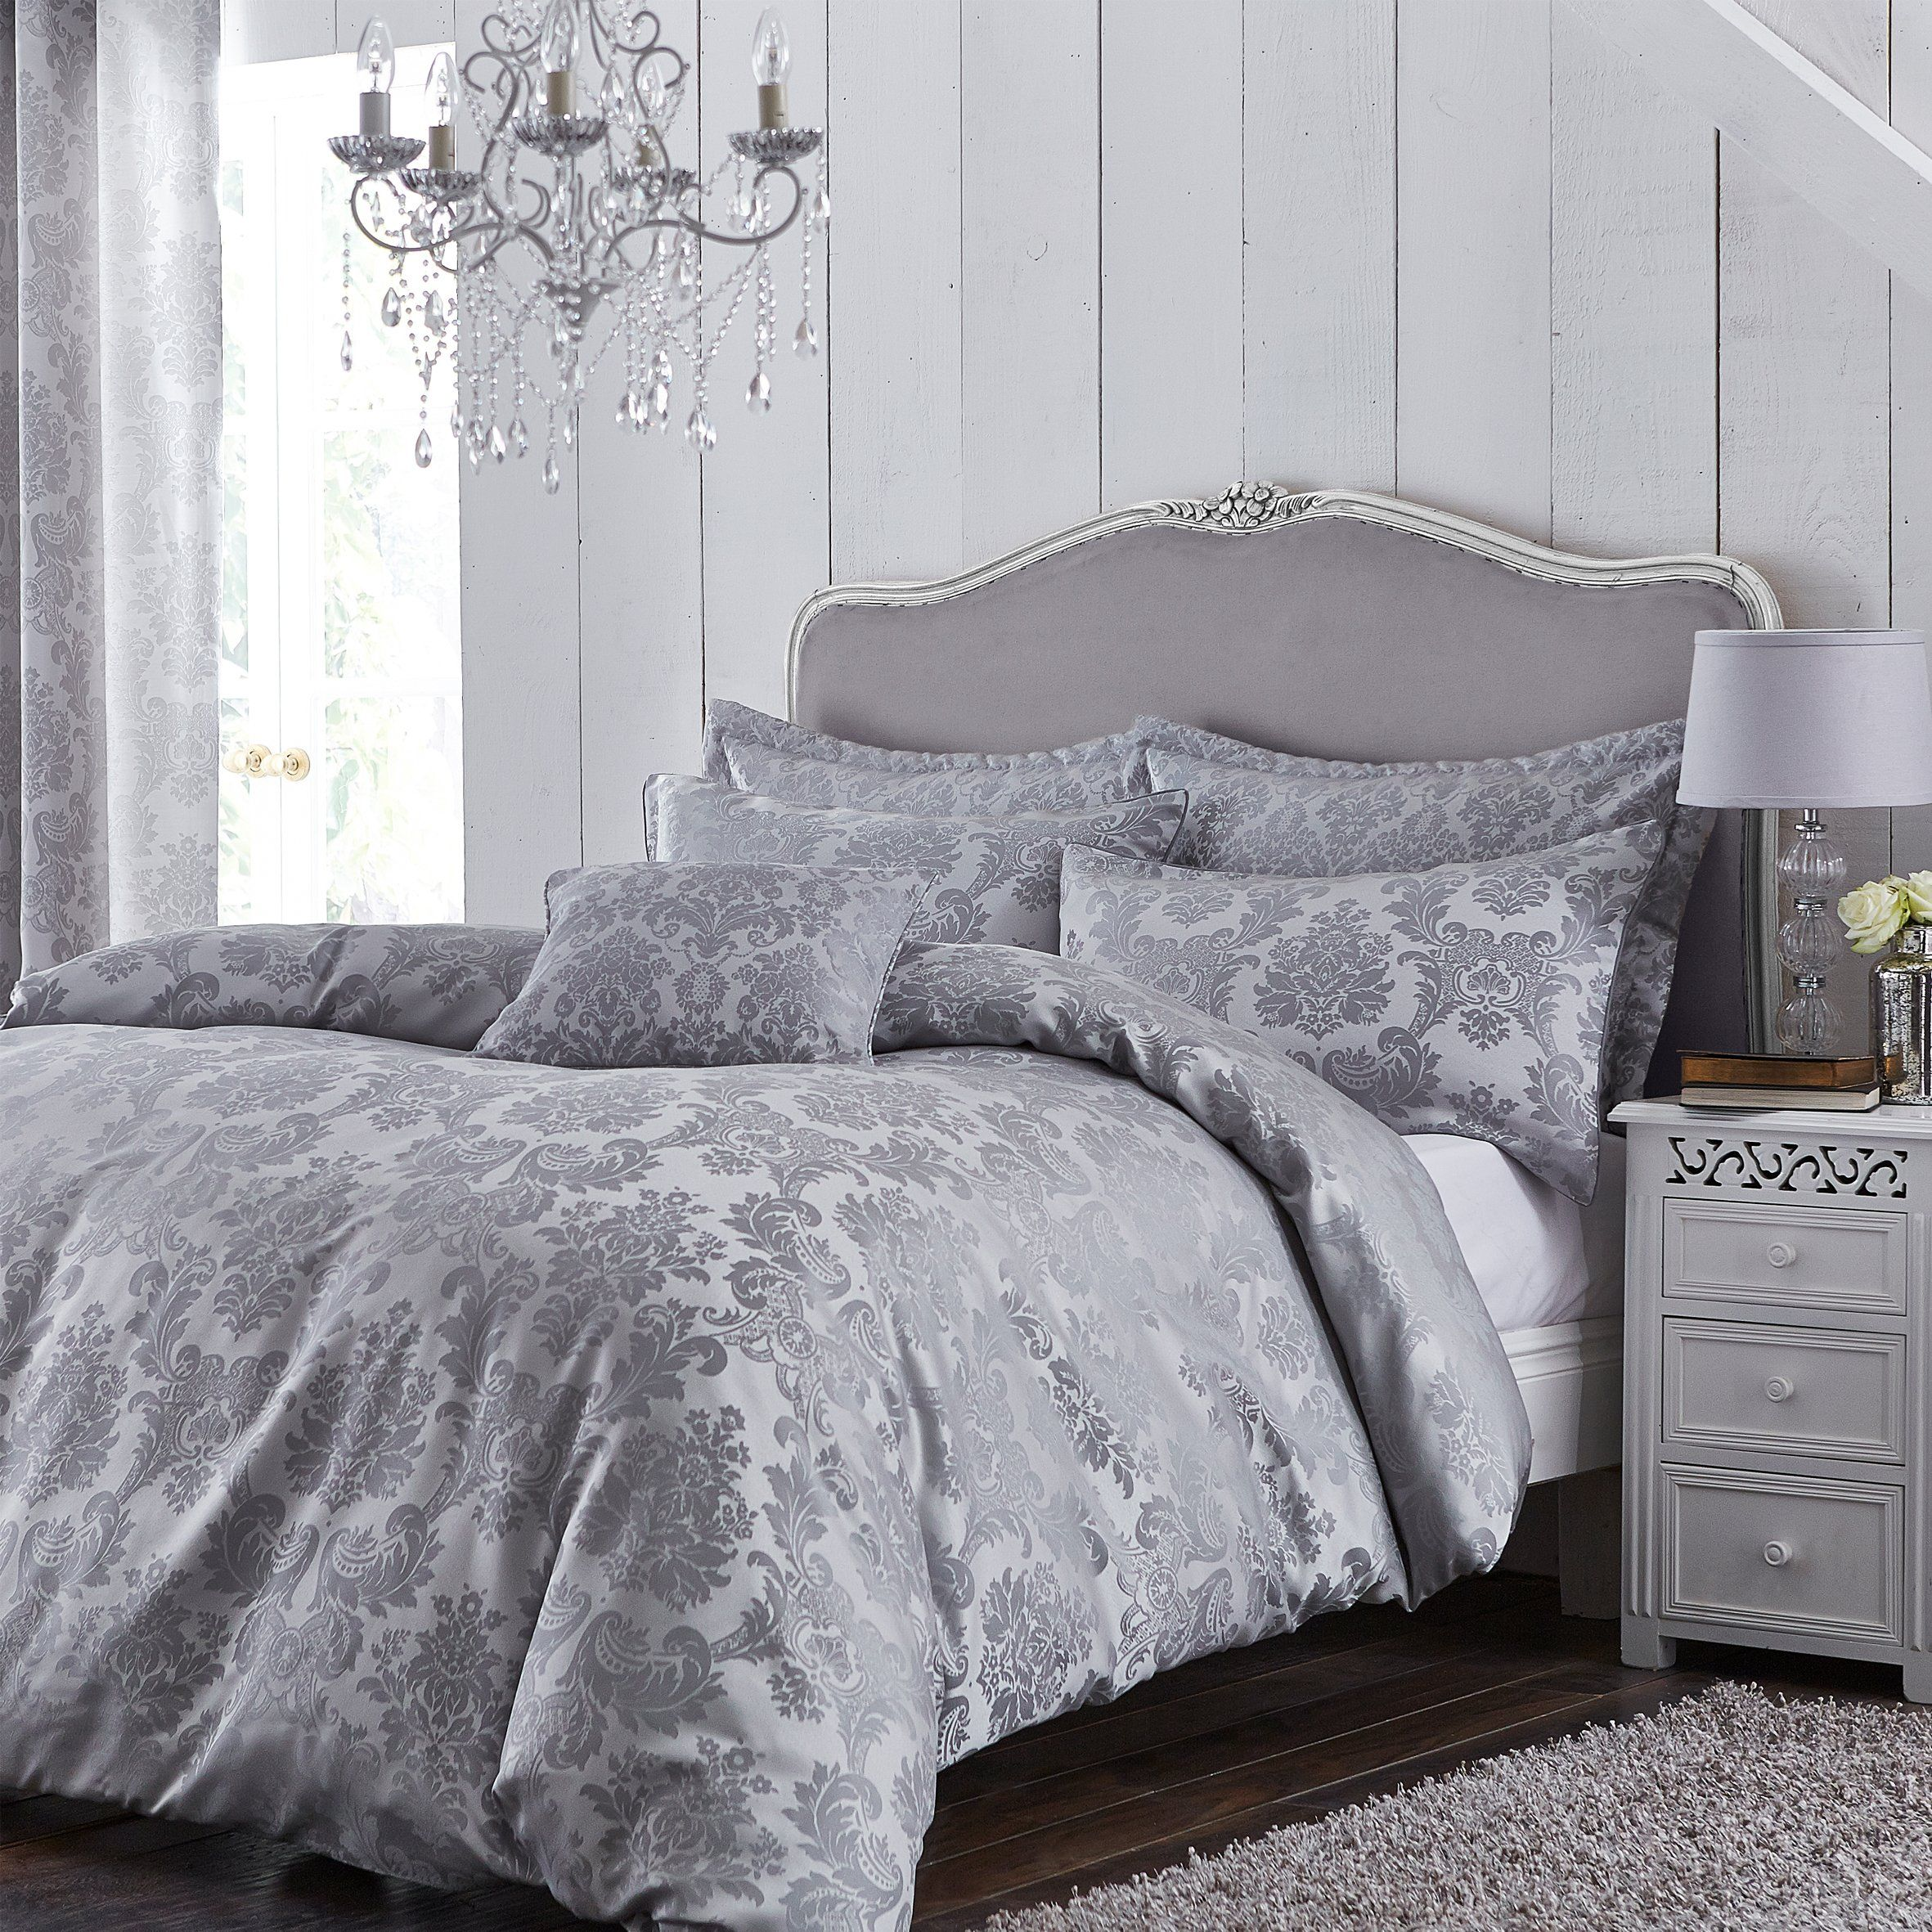 Pin about Silver bedding on DECOR/HOME WISH LIST